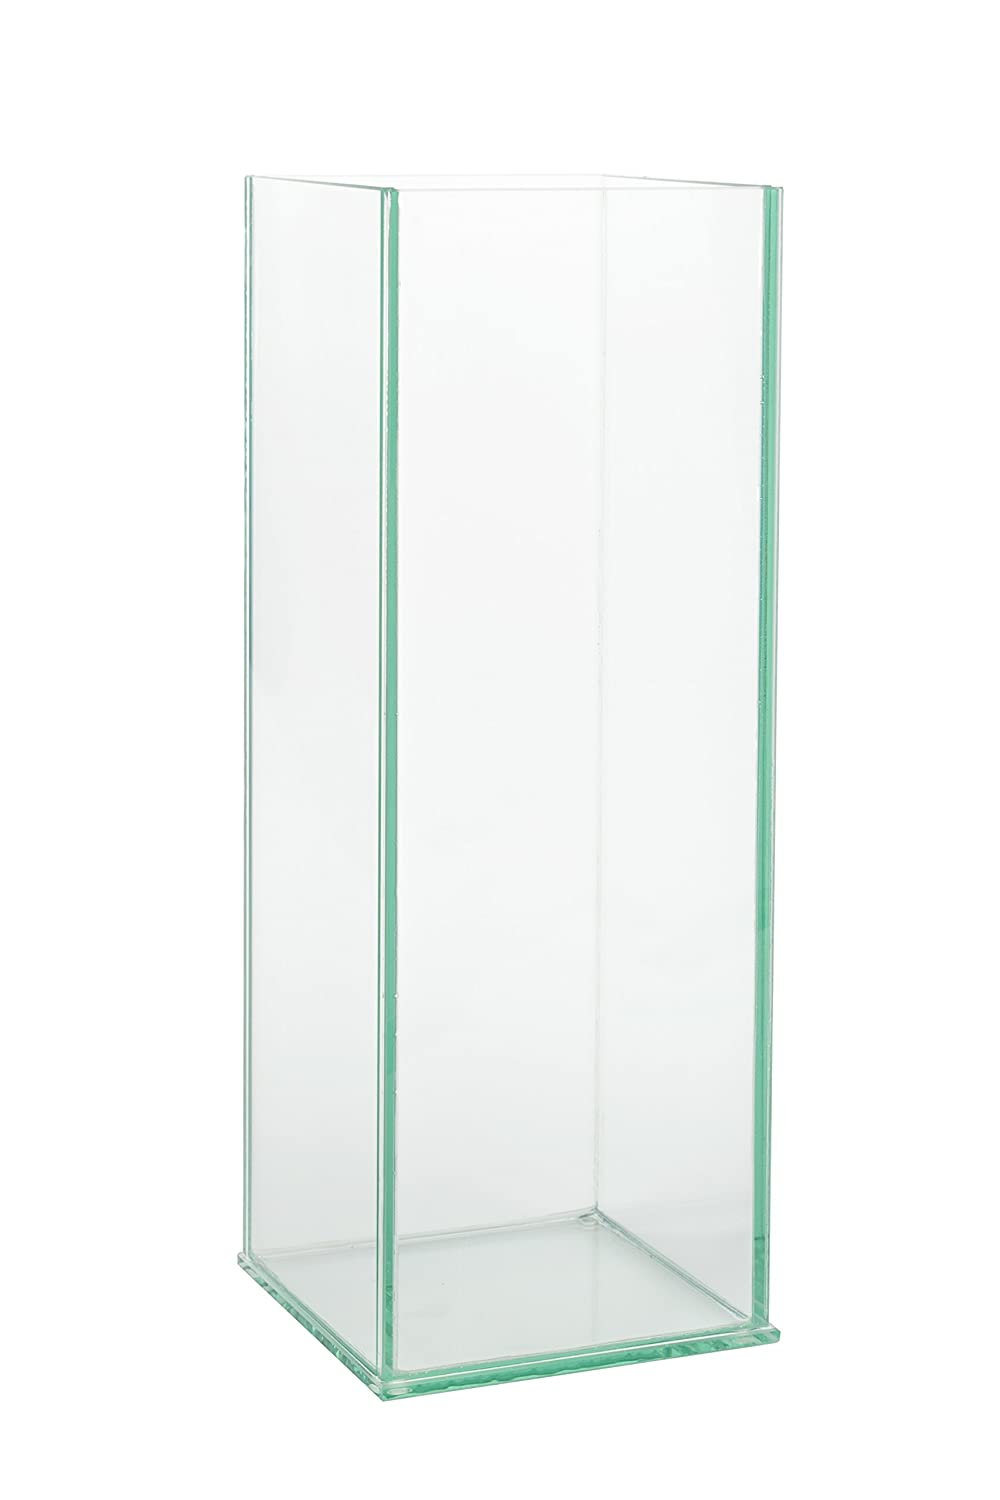 Royal imports quot rectangular clear glass vase x